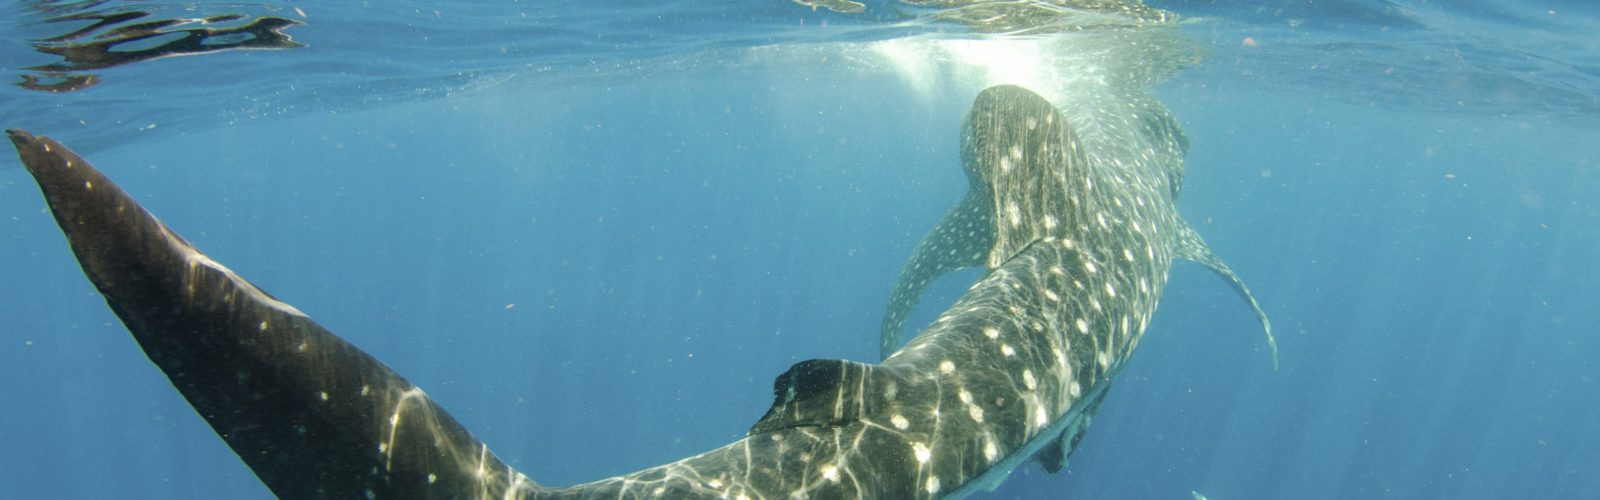 Whale shark swimming under water